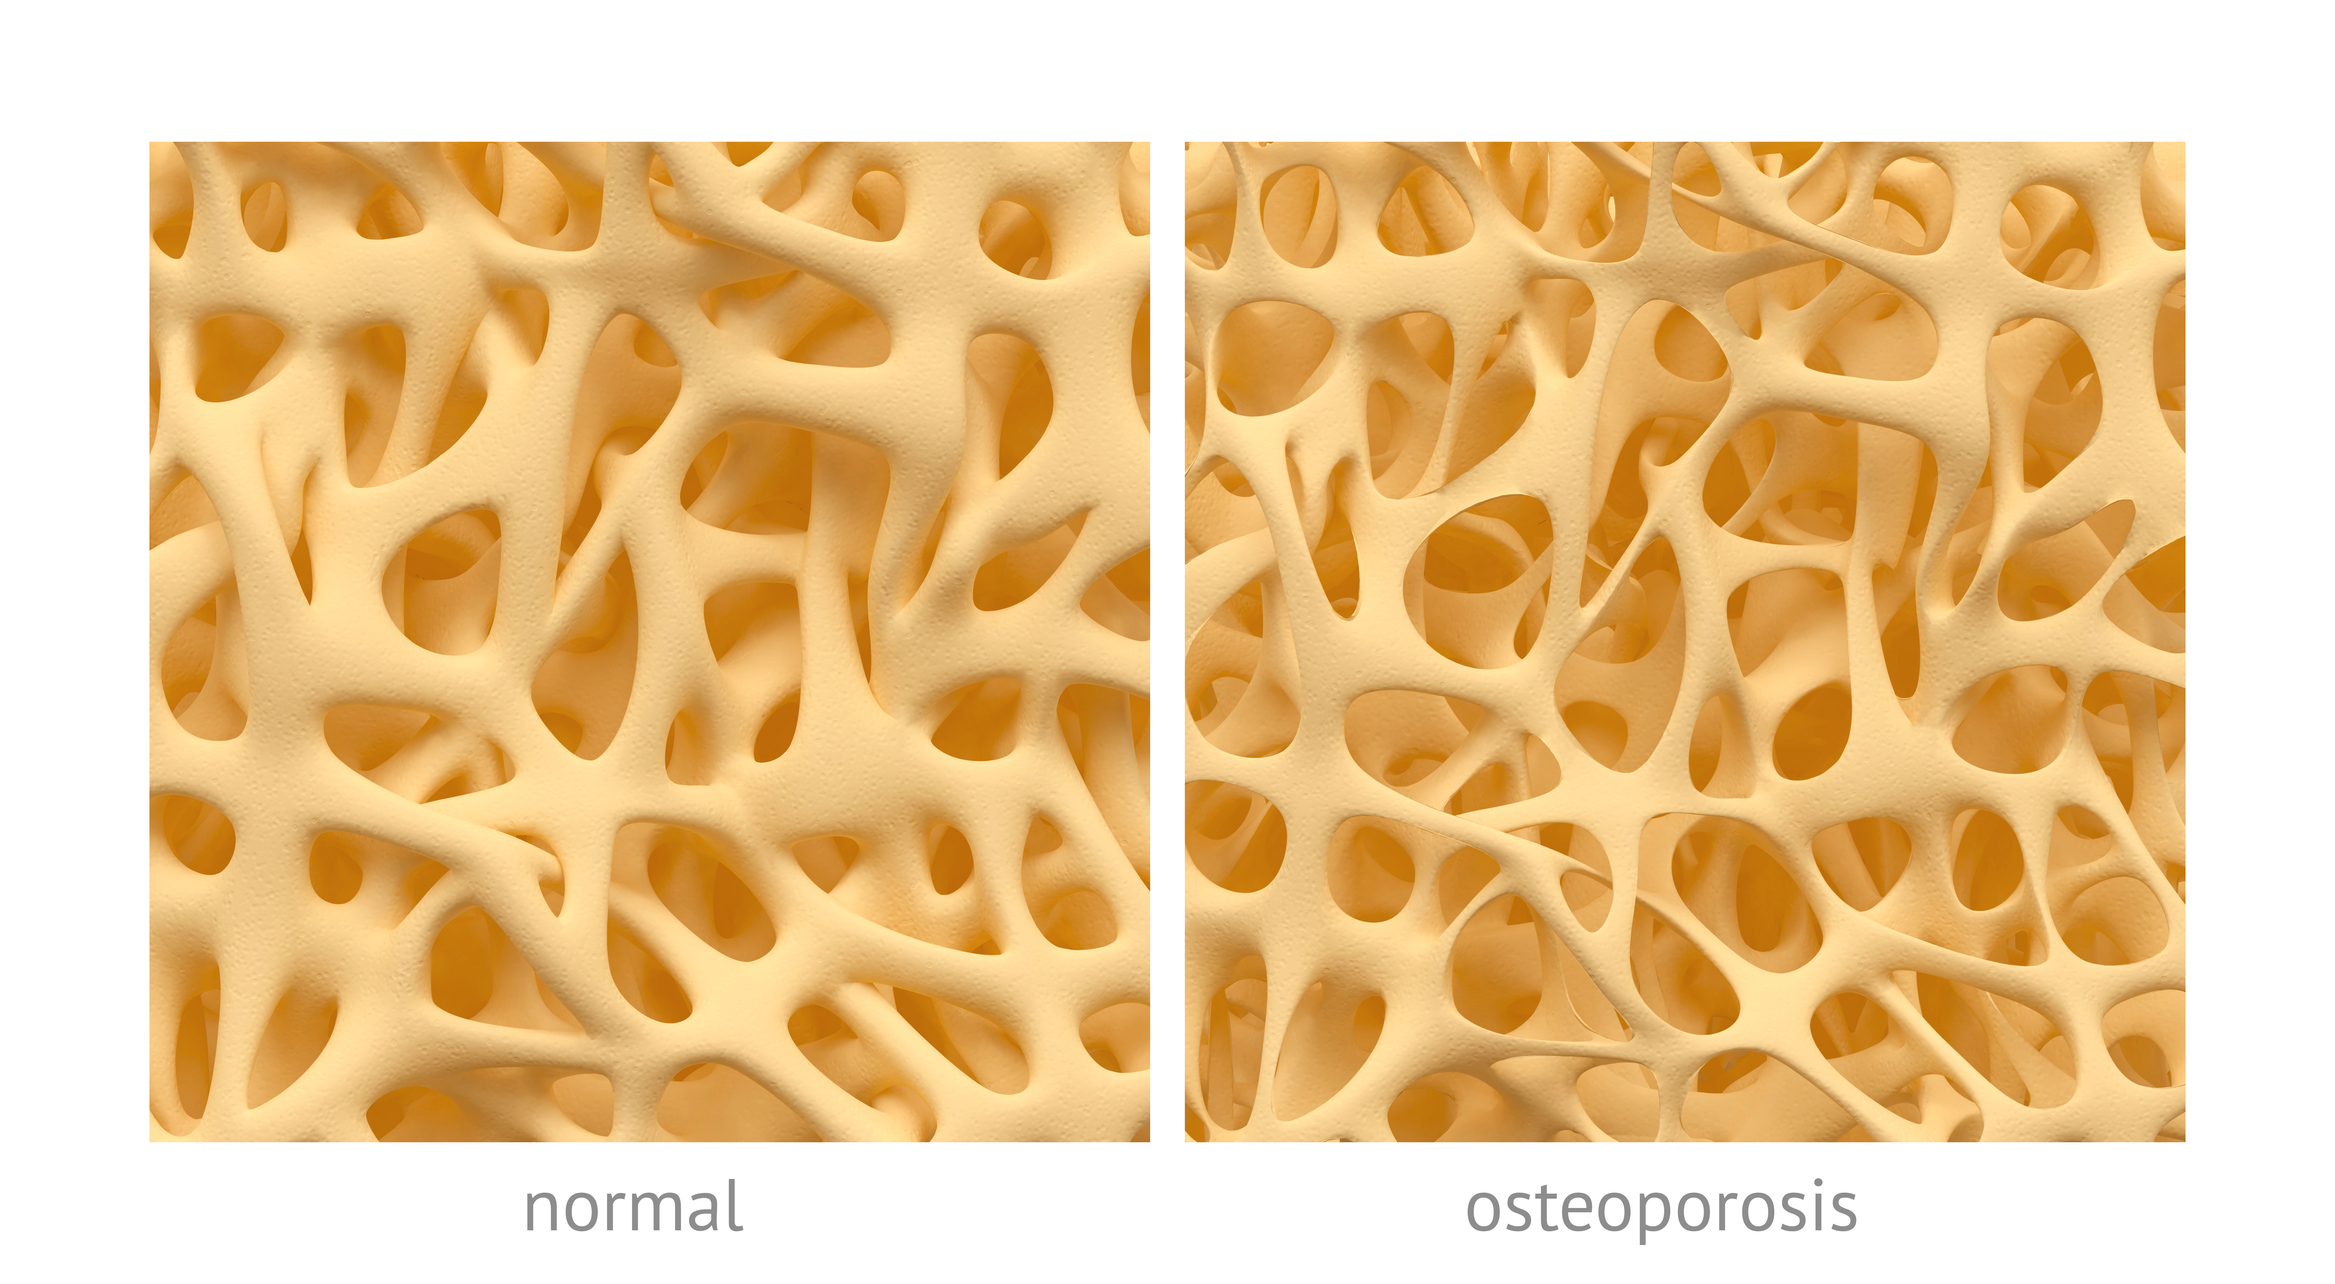 RSC Osteoporosis Spine Fractures